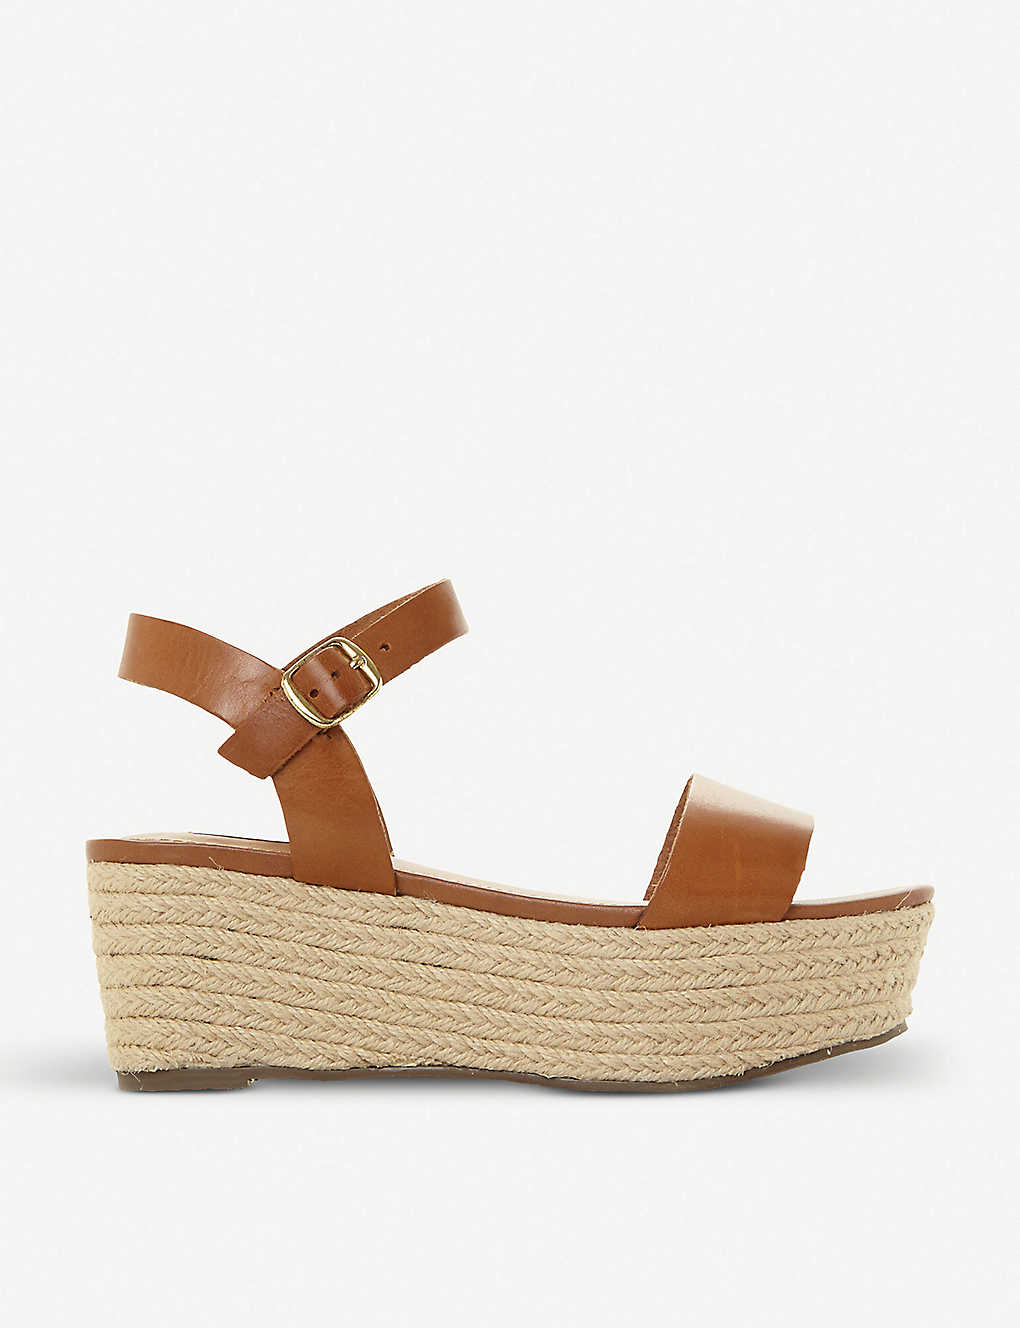 22051b4ad3 STEVE MADDEN - Busy SM leather and jute platform sandals ...